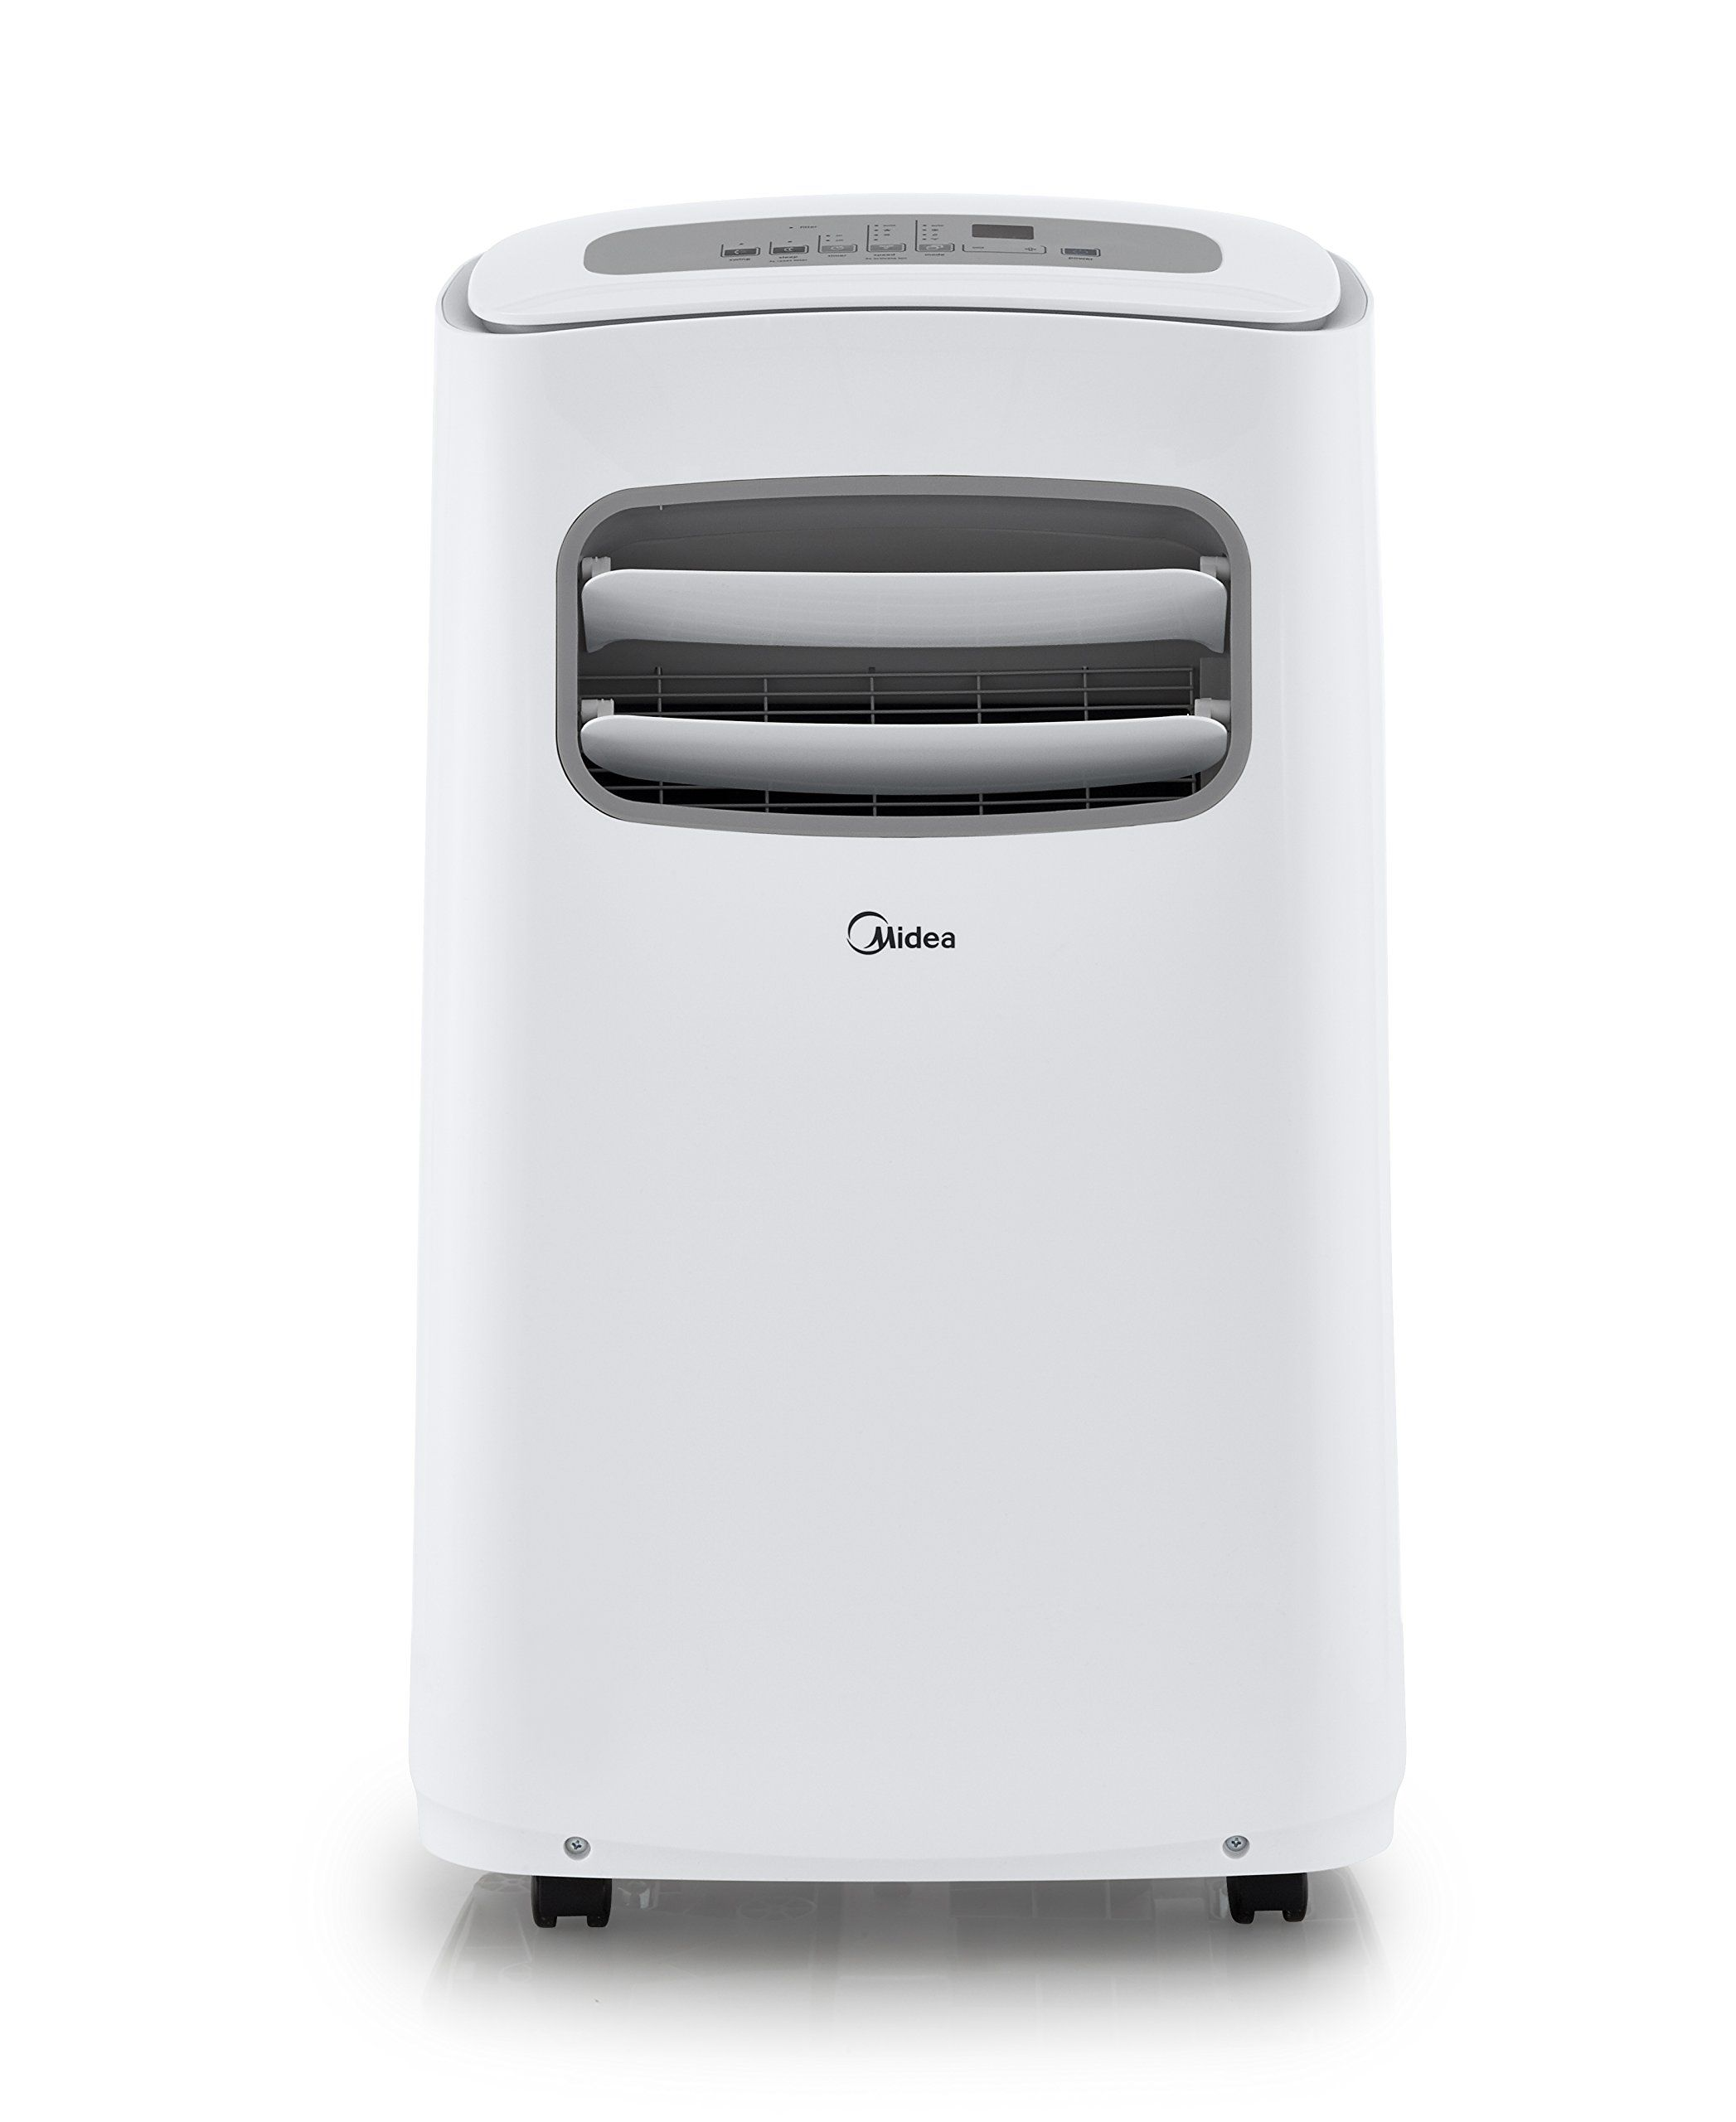 MIDEA EasyCool 3In1 Portable Air Conditioner with